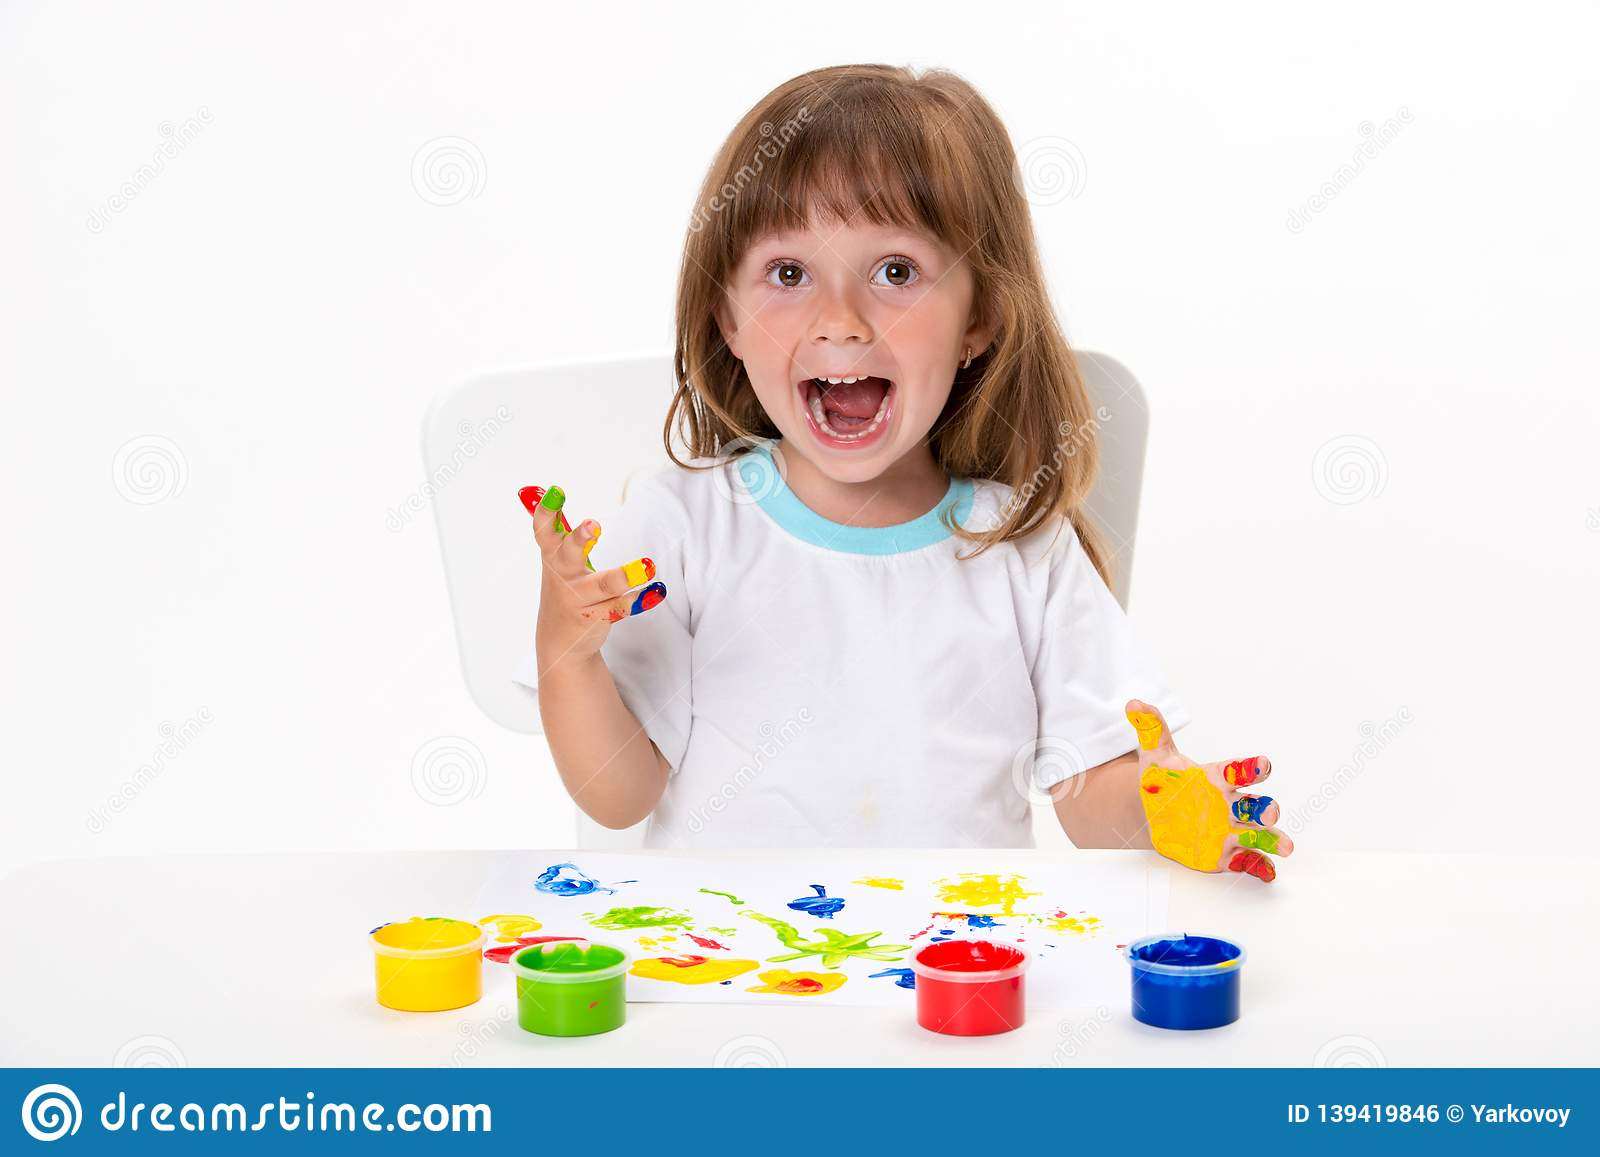 Close-up portrait of a cute cheerful happy smiling little girl draws her own hands with gouache or finger paints isolated on white